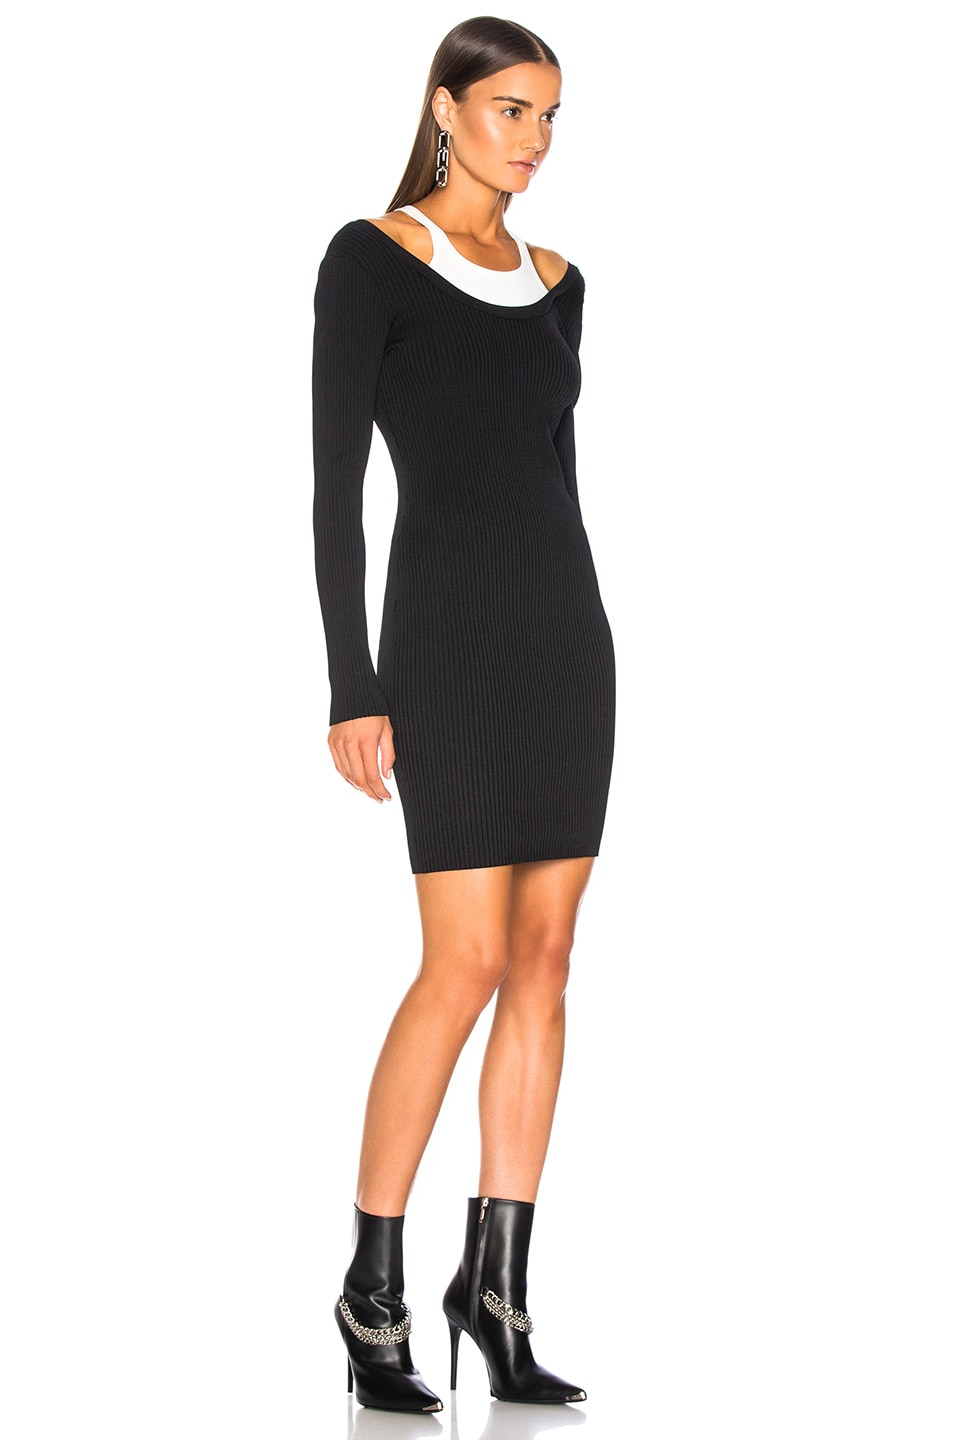 Image 2 of T by Alexander Wang Bodycon Bi Layer Mini Dress in Black & White